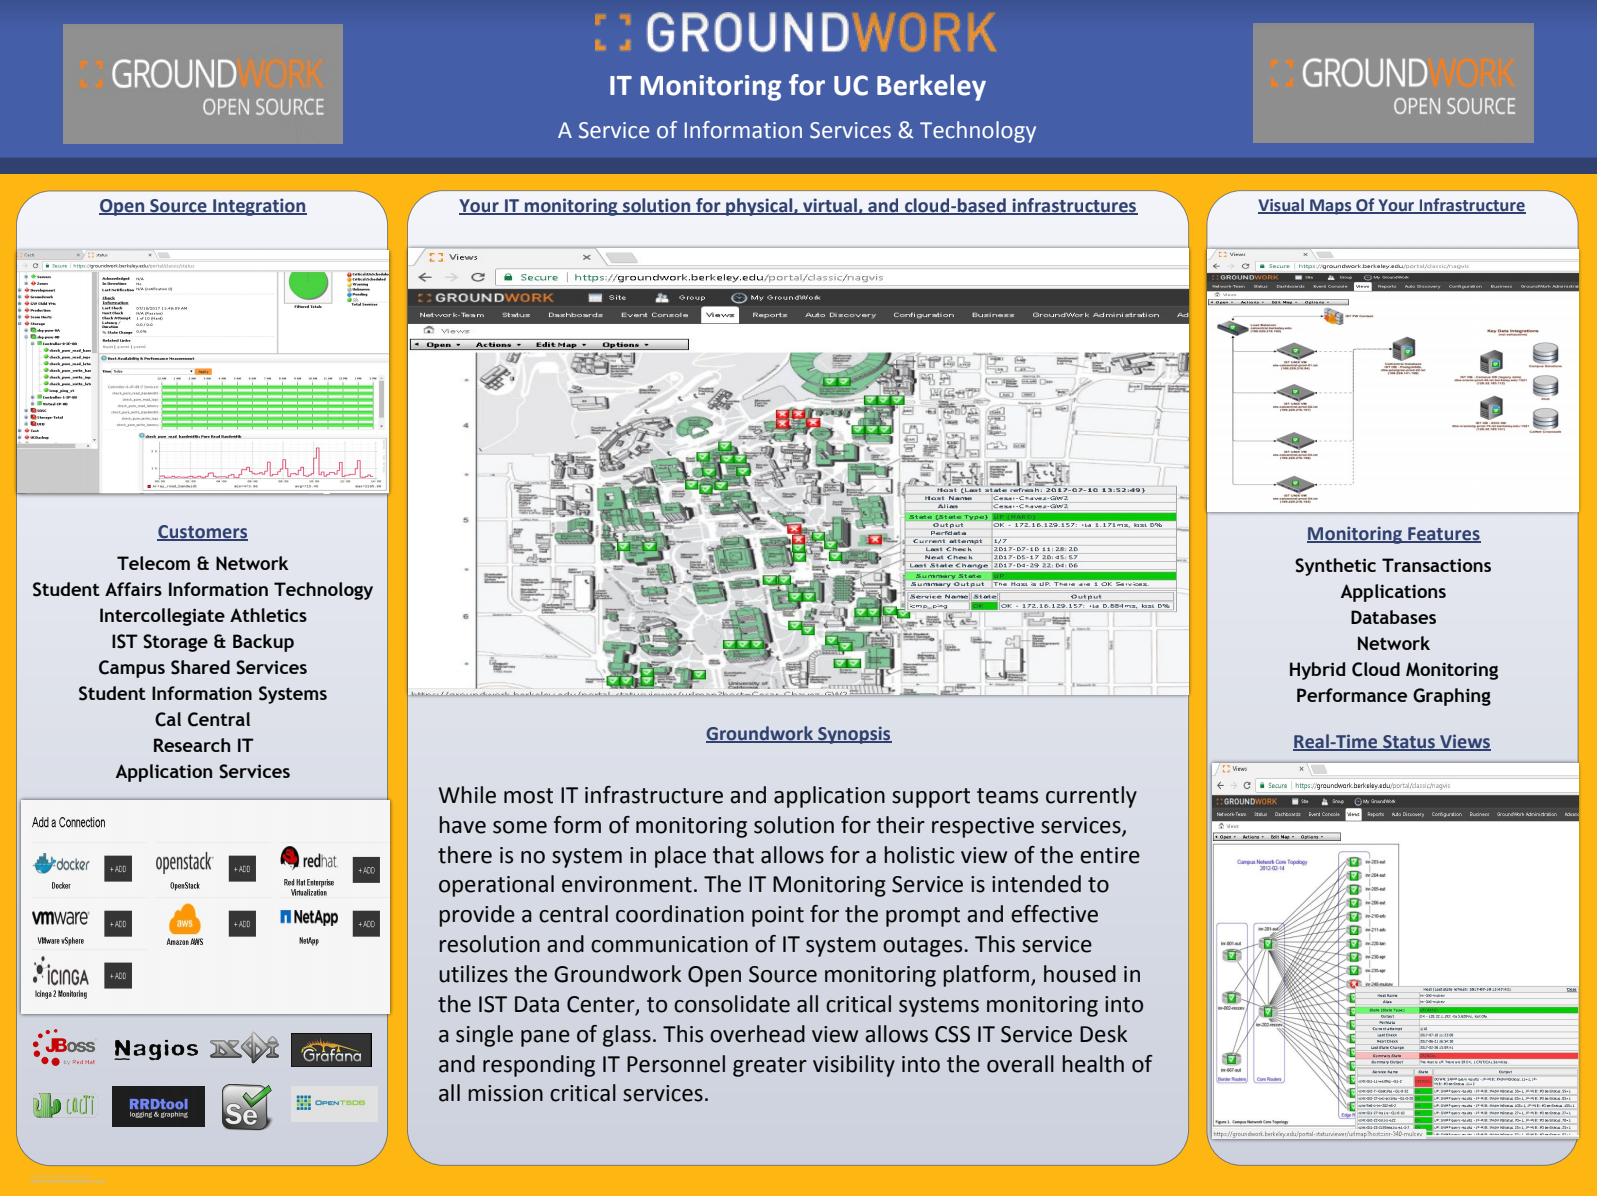 image for Groundwork IT Monitoring poster